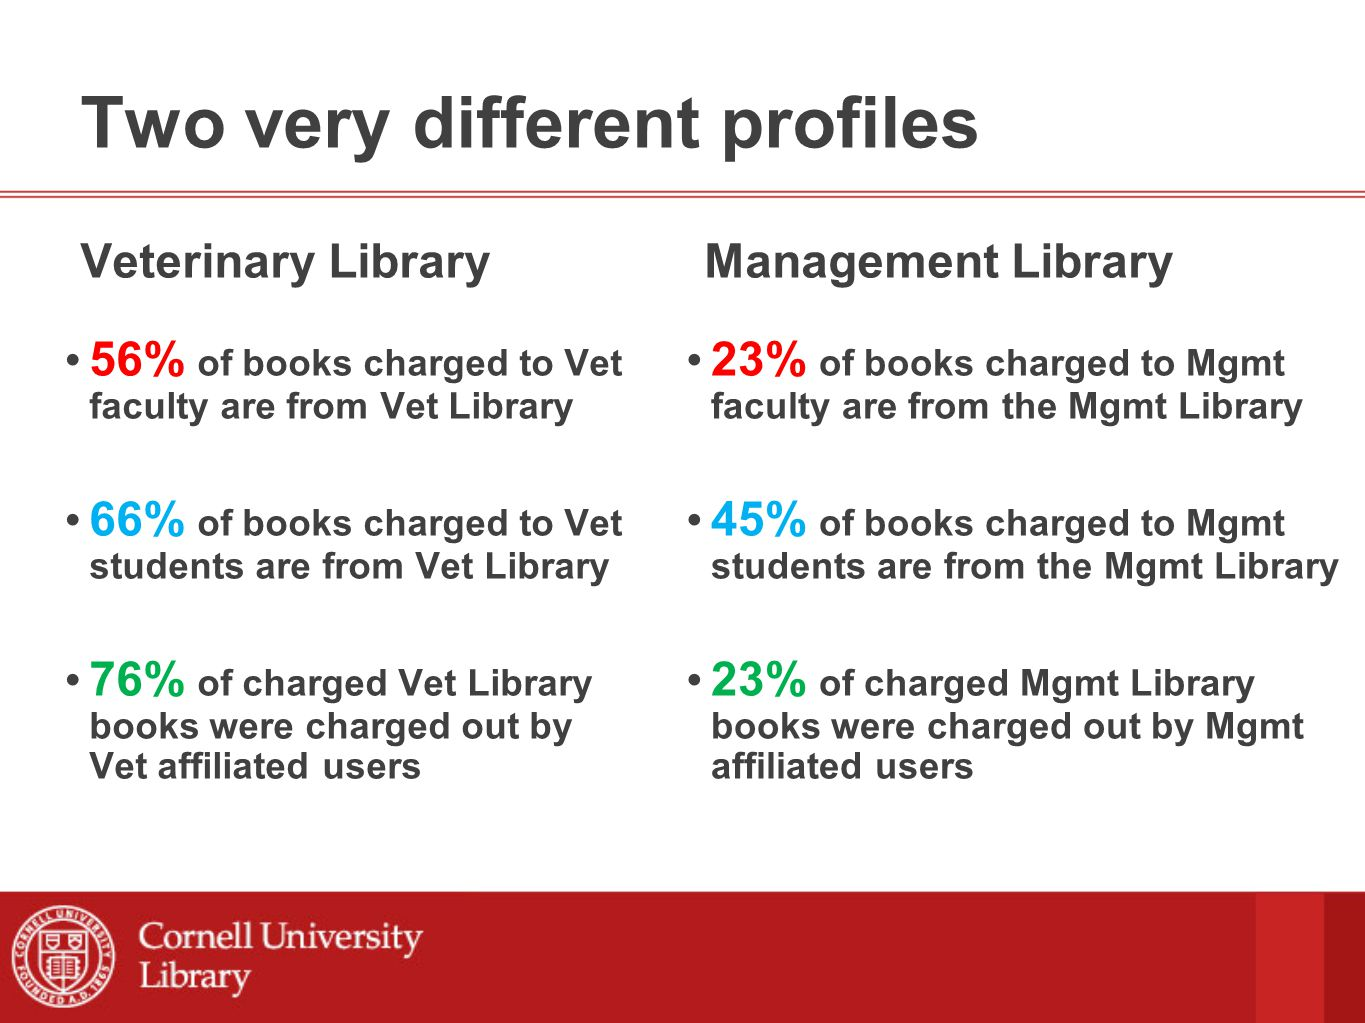 Two very different profiles Veterinary Library 56% of books charged to Vet faculty are from Vet Library 66% of books charged to Vet students are from Vet Library 76% of charged Vet Library books were charged out by Vet affiliated users Management Library 23% of books charged to Mgmt faculty are from the Mgmt Library 45% of books charged to Mgmt students are from the Mgmt Library 23% of charged Mgmt Library books were charged out by Mgmt affiliated users